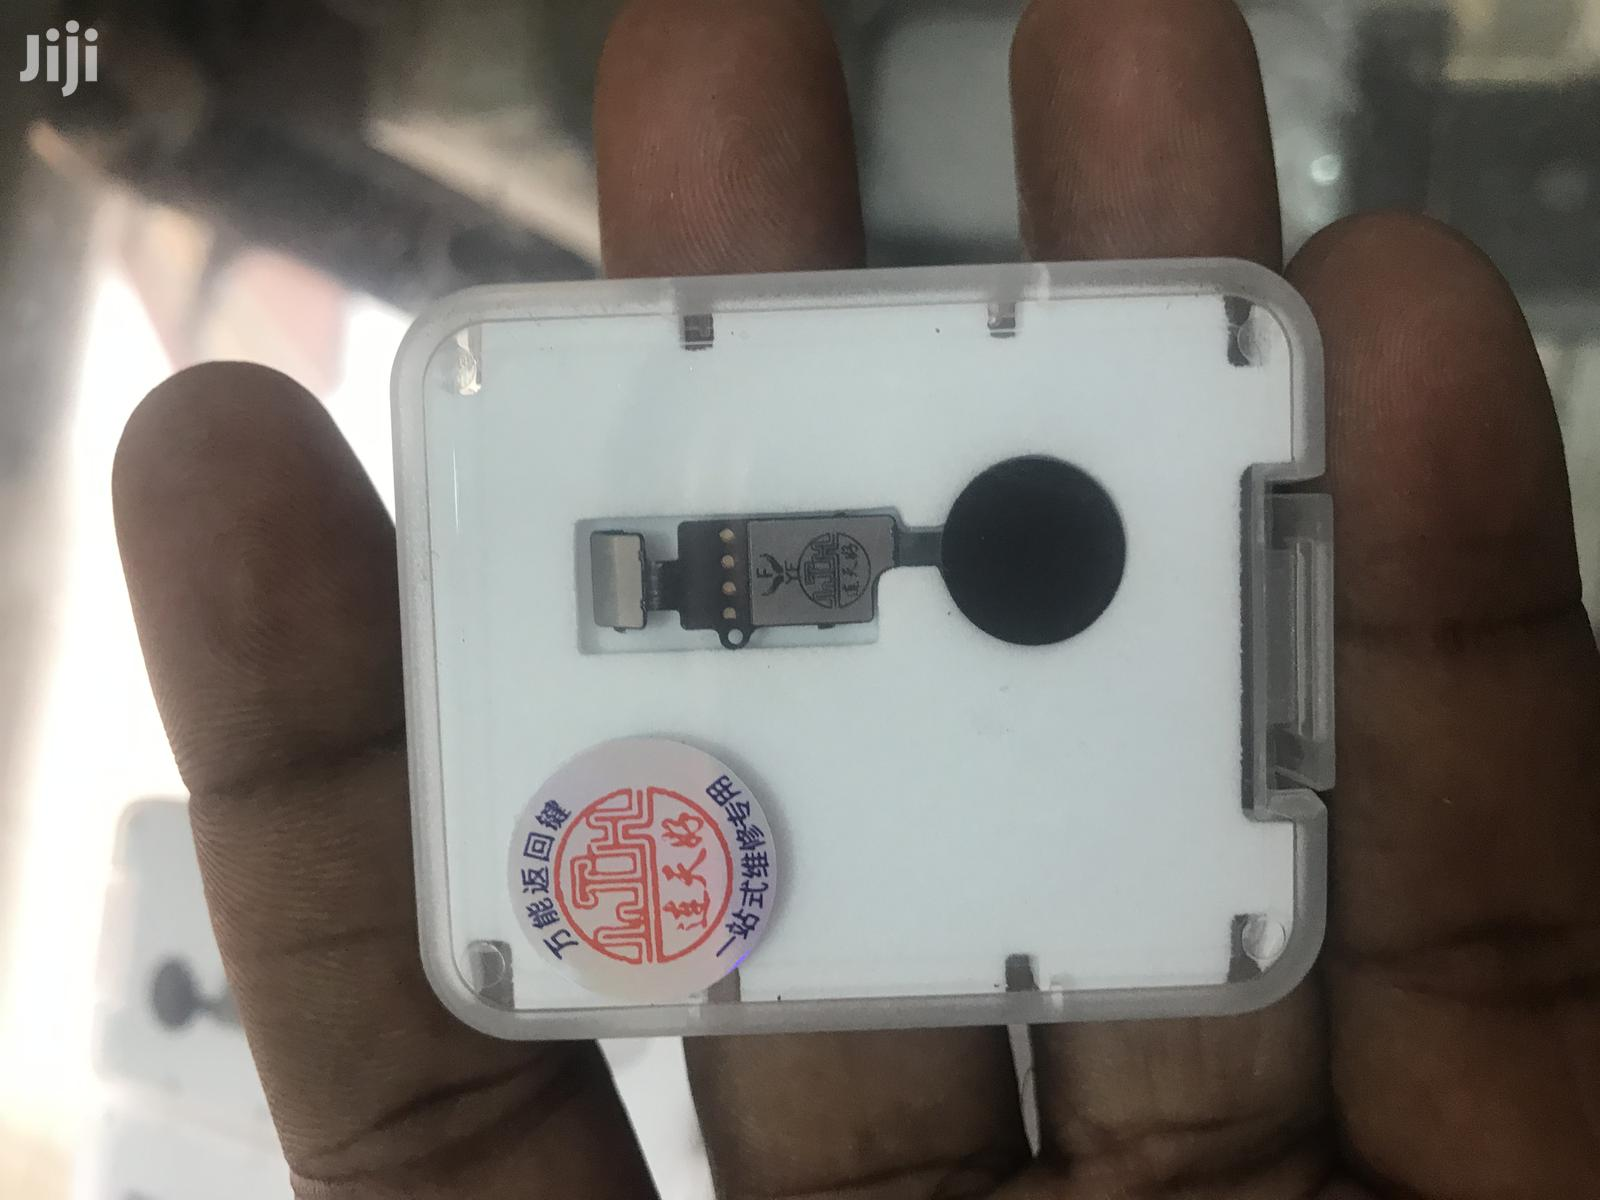 iPhone Home Button For Sale | Accessories for Mobile Phones & Tablets for sale in Achimota, Greater Accra, Ghana